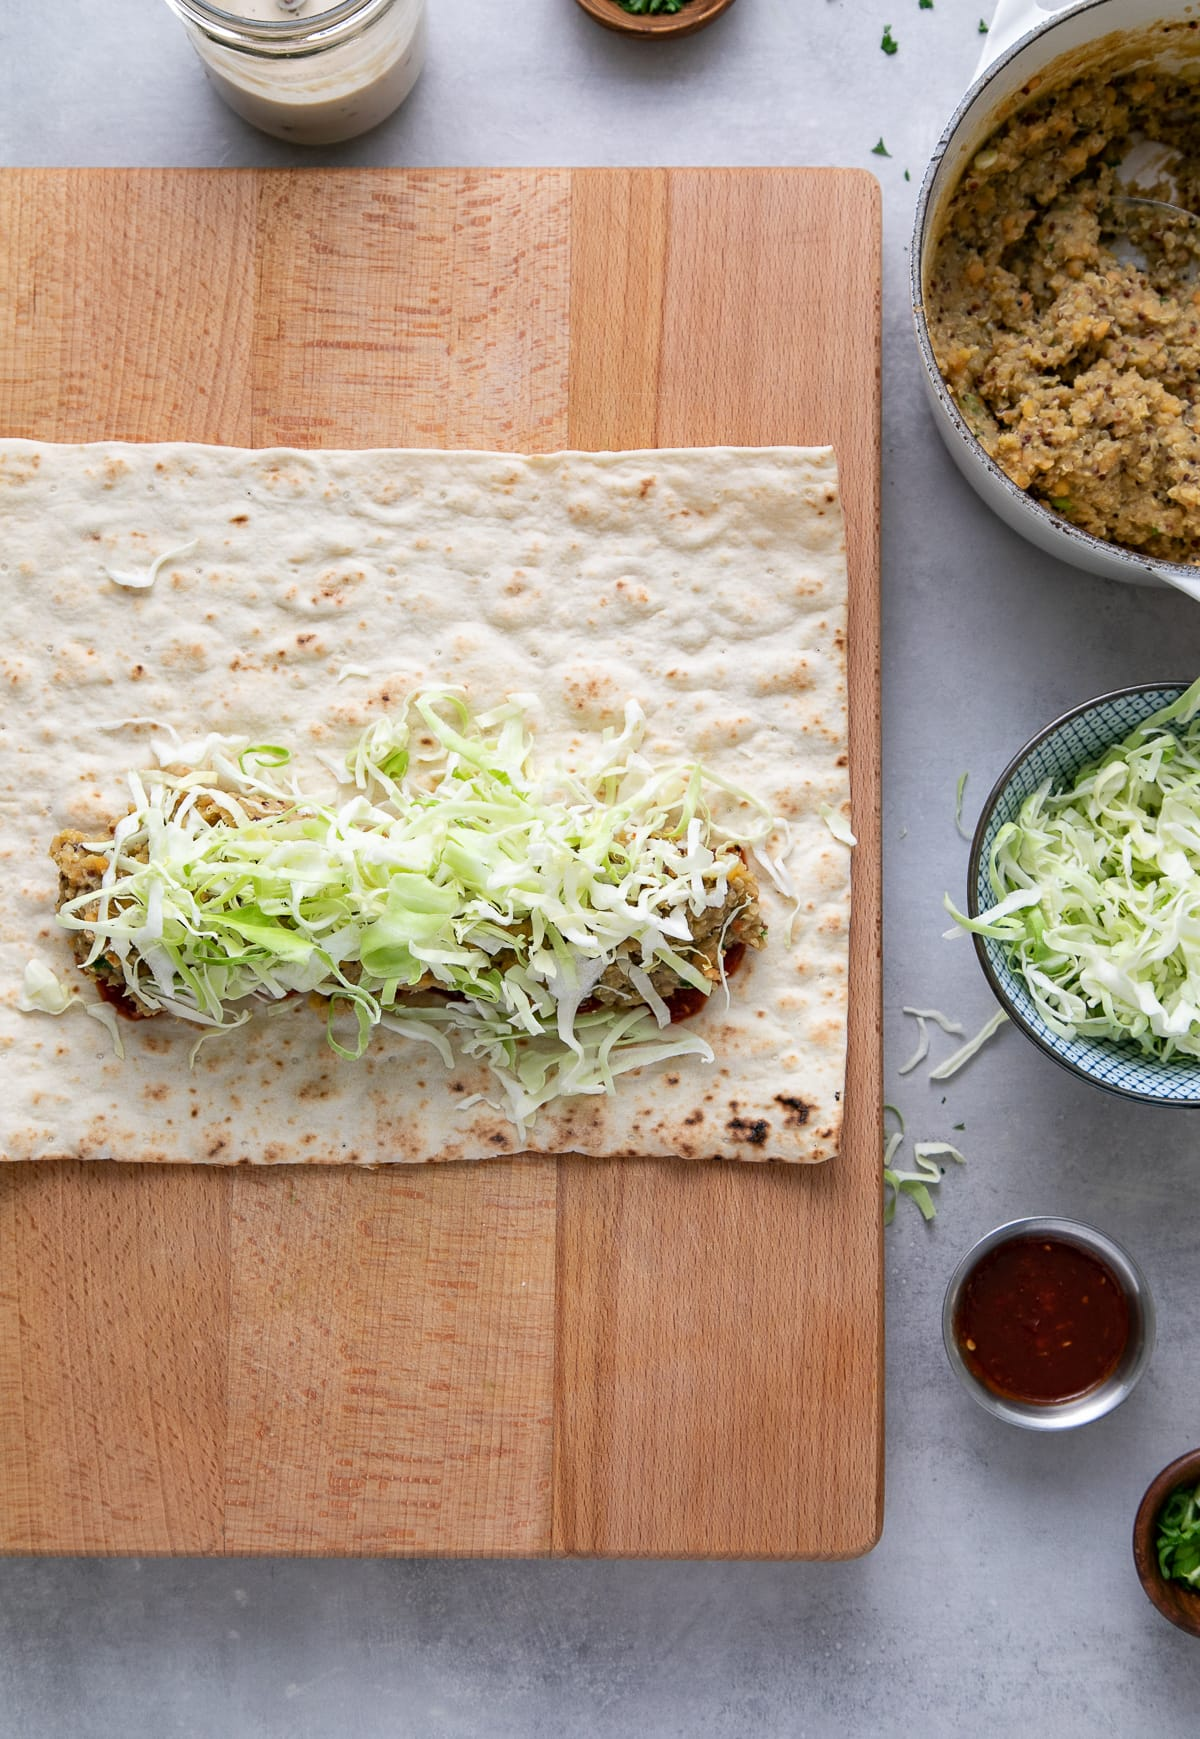 top down view showing the process of making spicy quinoa lentil wraps.